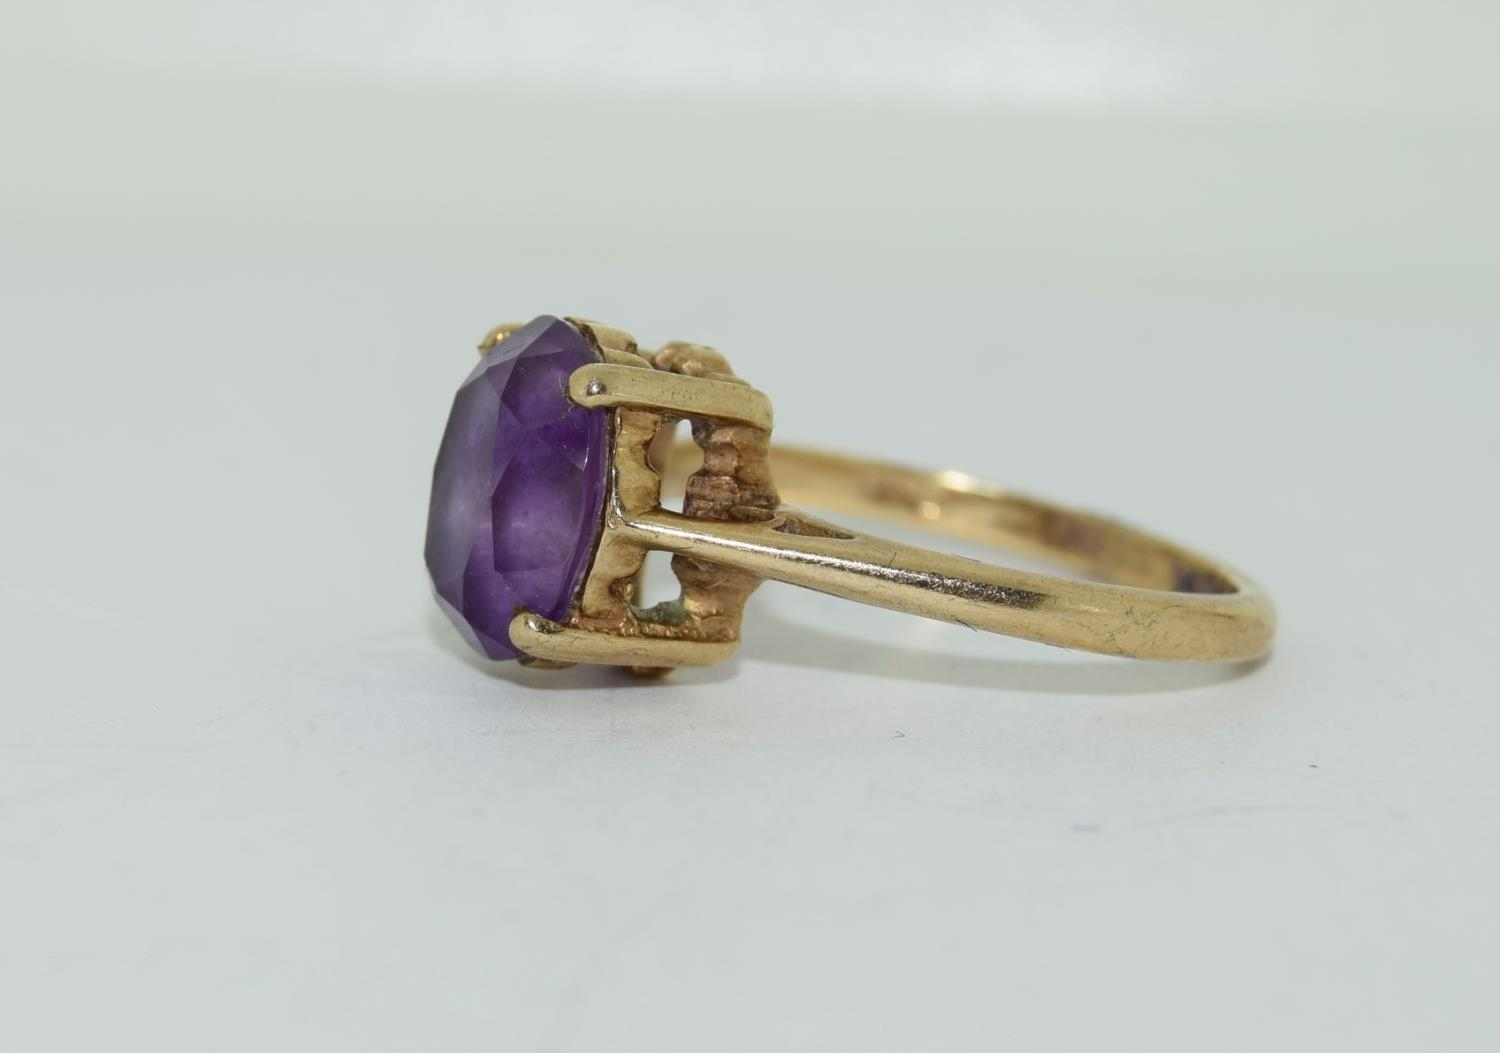 9ct gold ladies Amethyst ring size N - Image 8 of 12